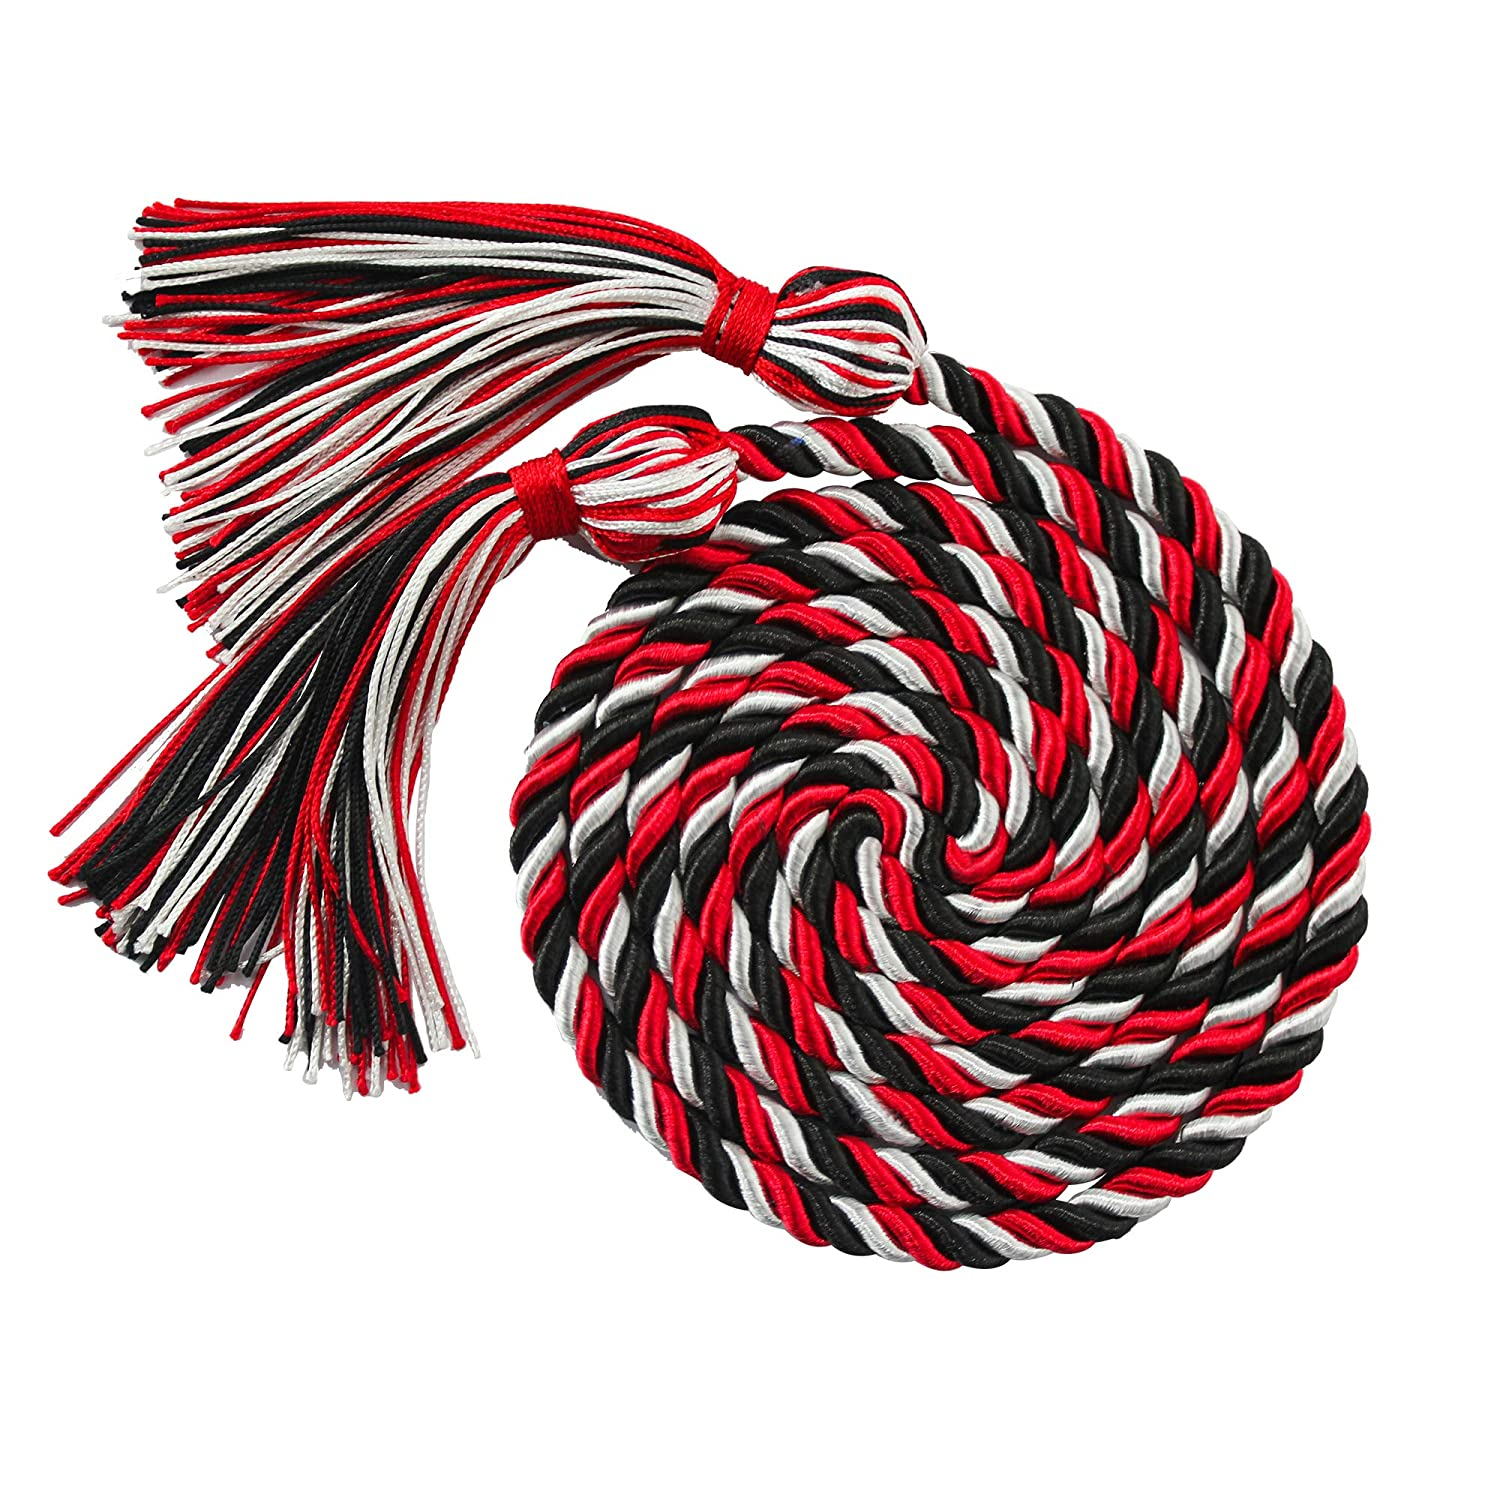 GraduationMall Graduation Honor Cord 68 EmeraldWhite